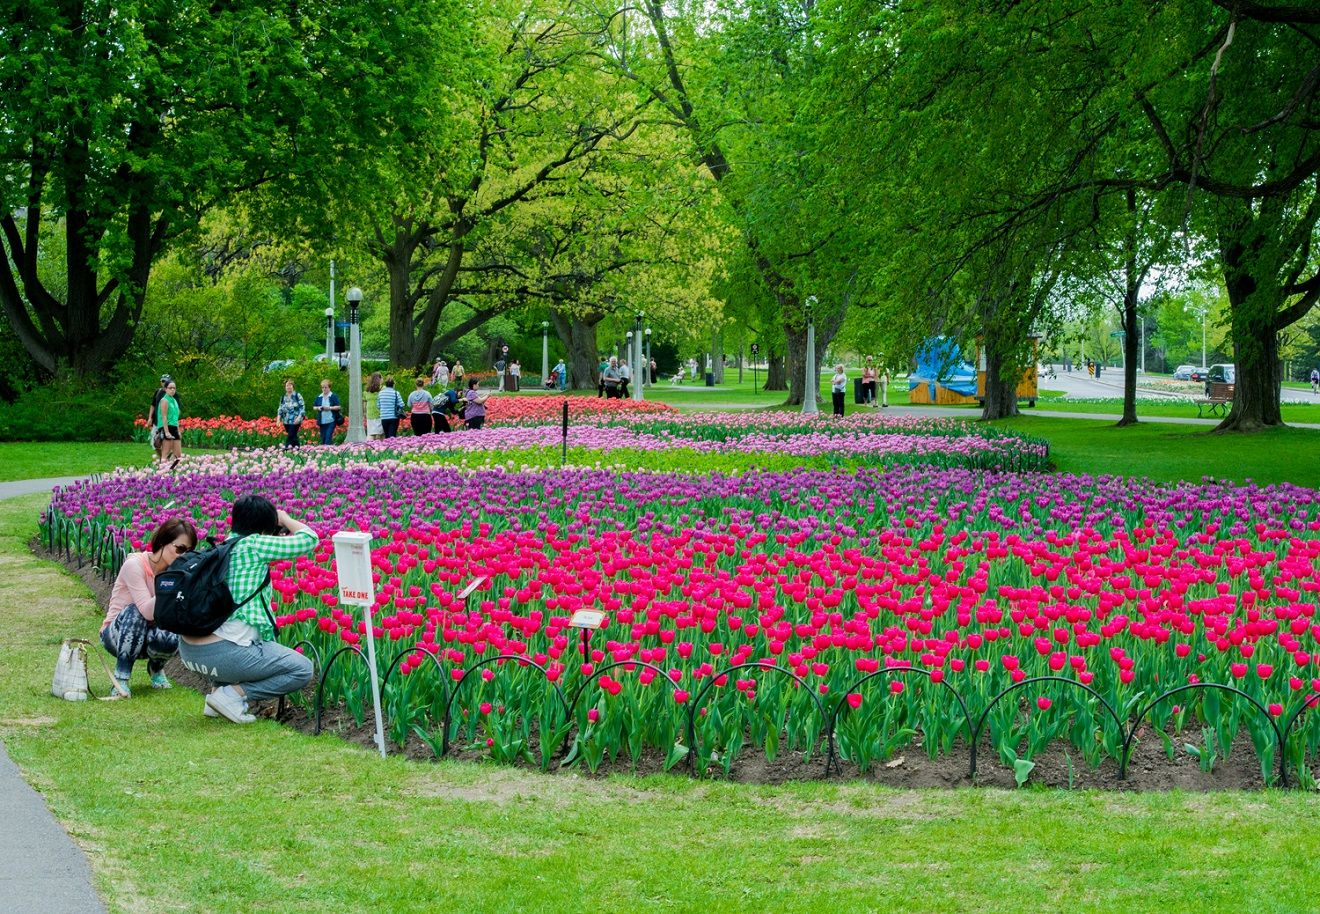 Skagit Valley Tulip Festival in full bloom | The Seattle Times